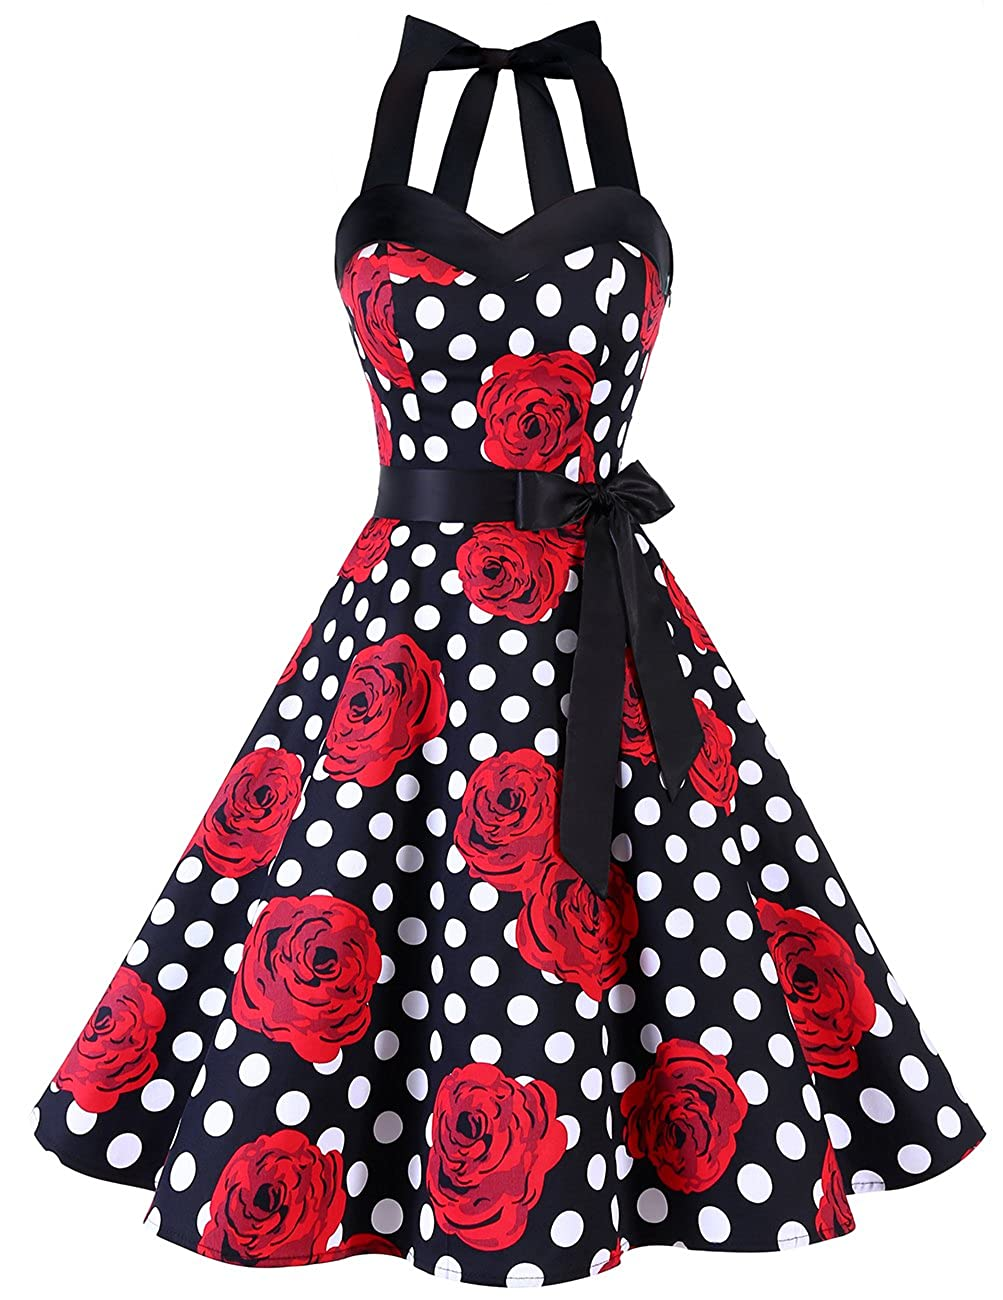 TALLA M. Dresstells® Halter 50s Rockabilly Polka Dots Audrey Dress Retro Cocktail Dress Black Red Rose Dot M